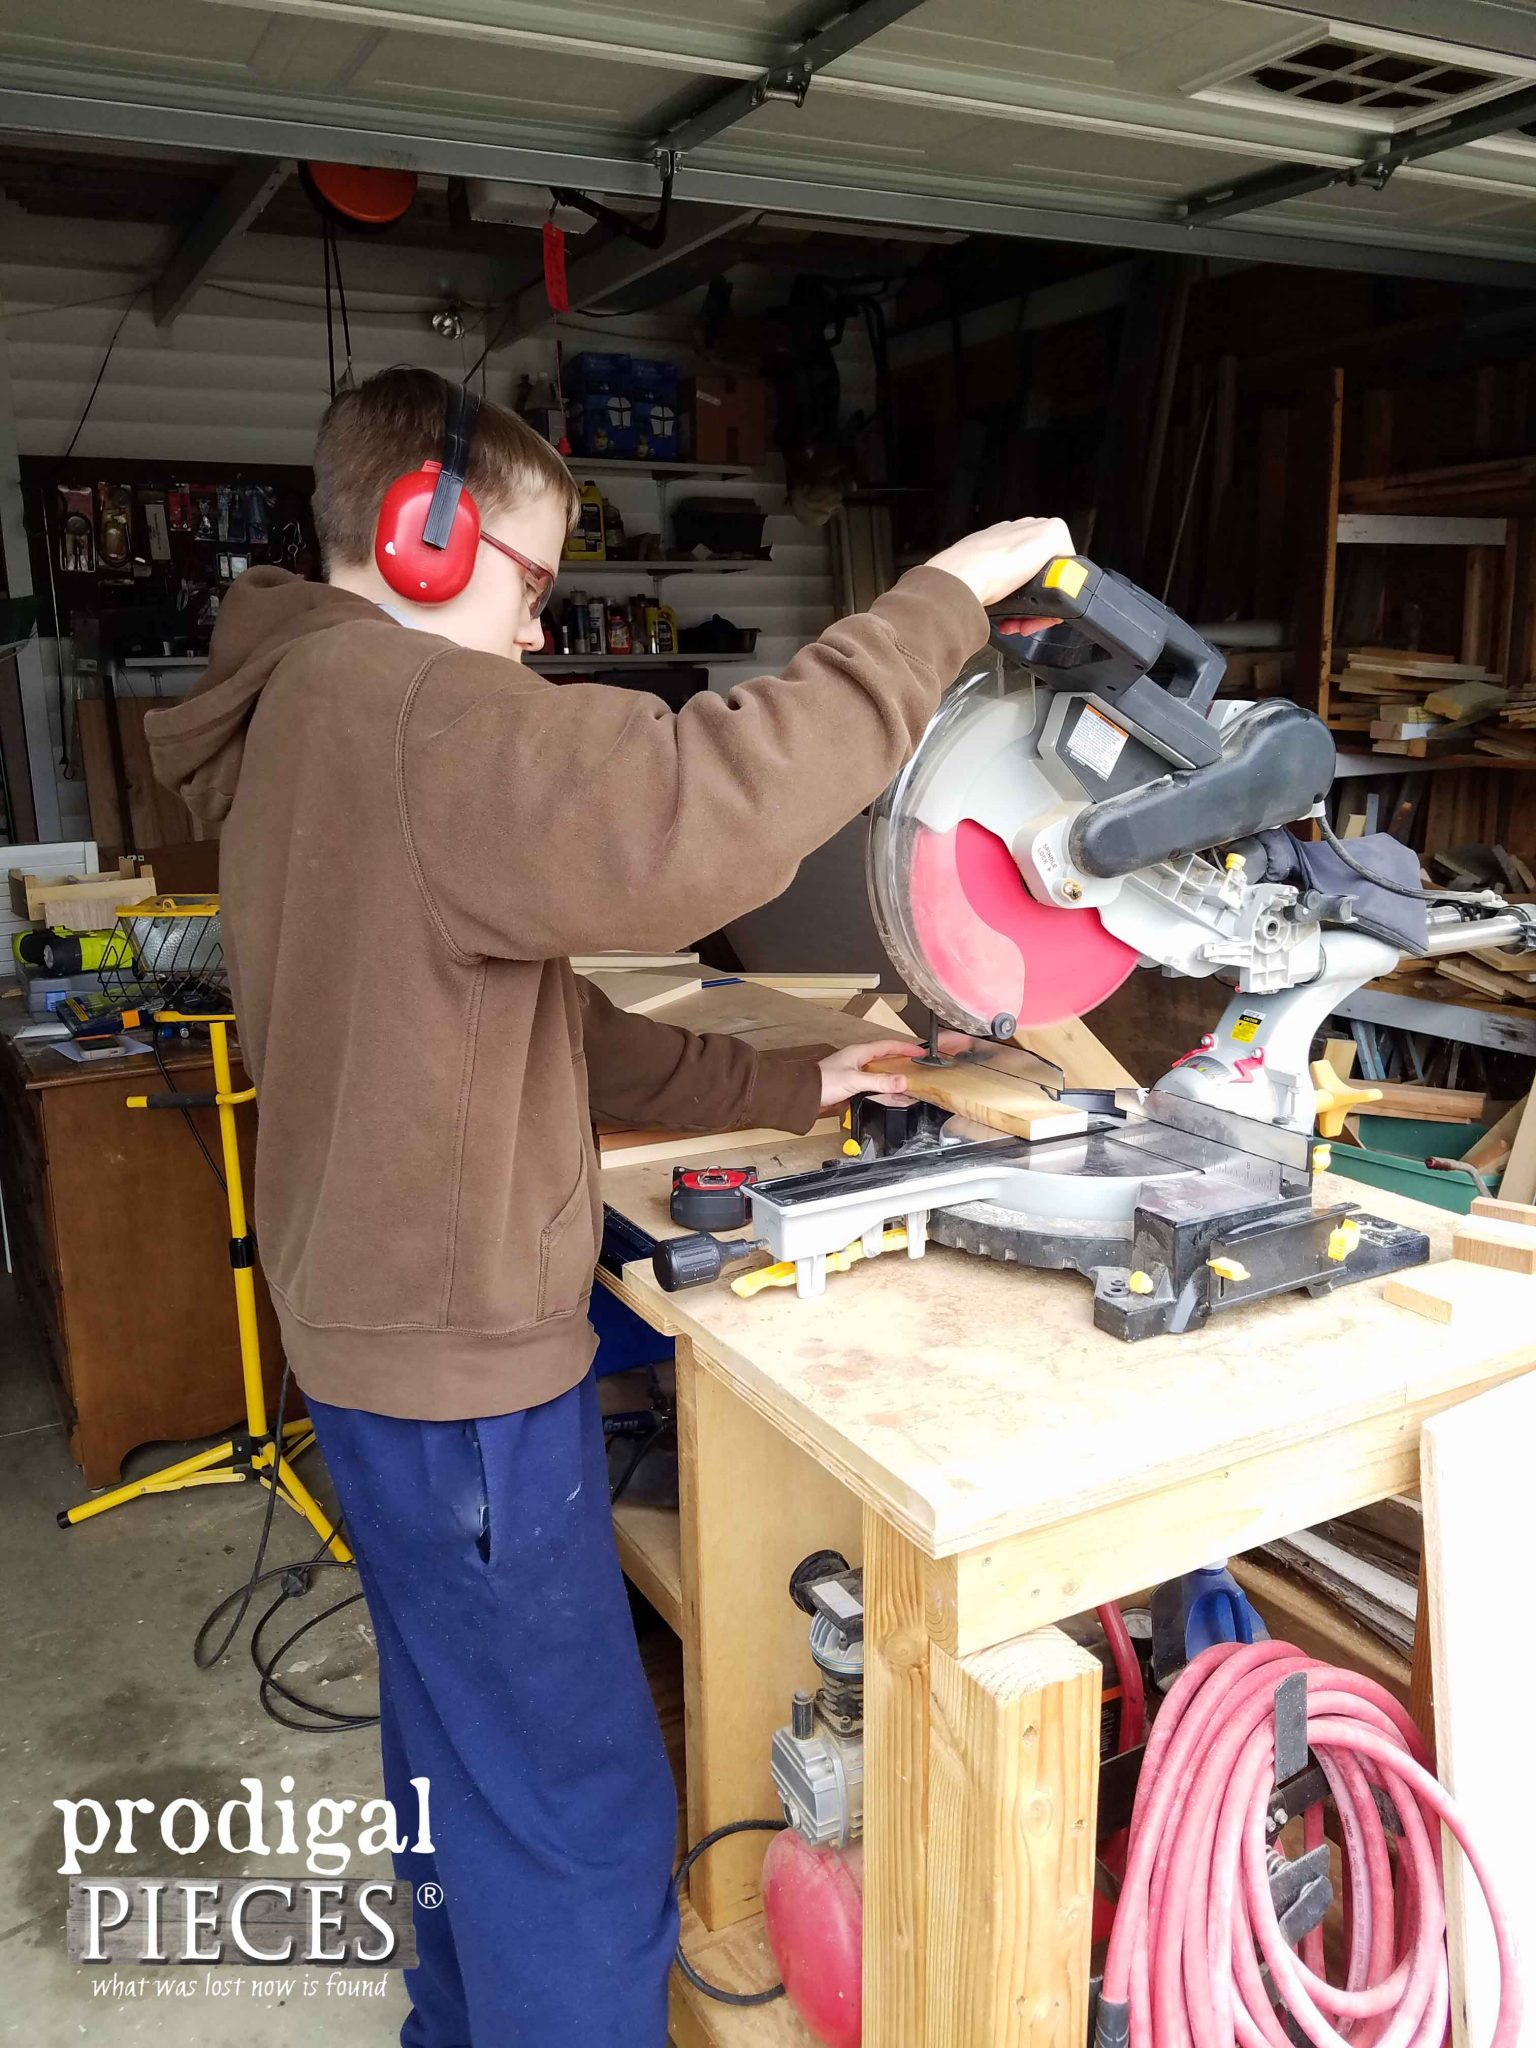 Teen using Miter Saw to Make Repurposed Crate | Prodigal Pieces | prodigalpieces.com